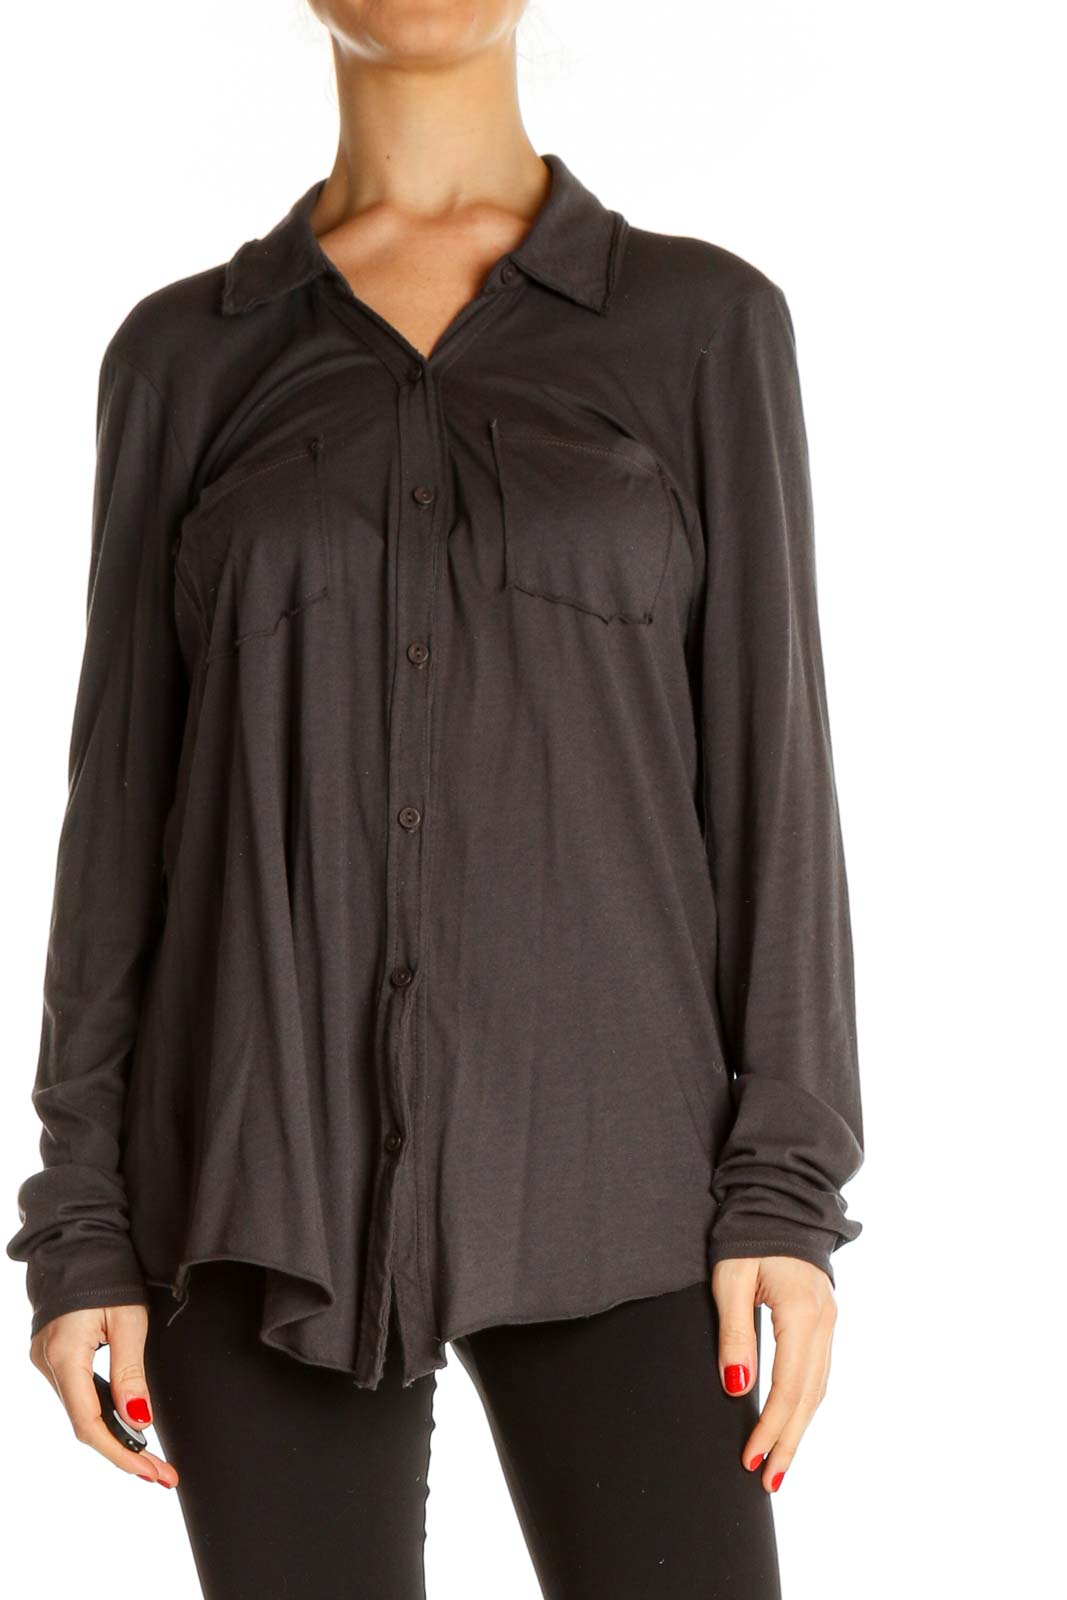 Gray Solid Formal Shirt Front